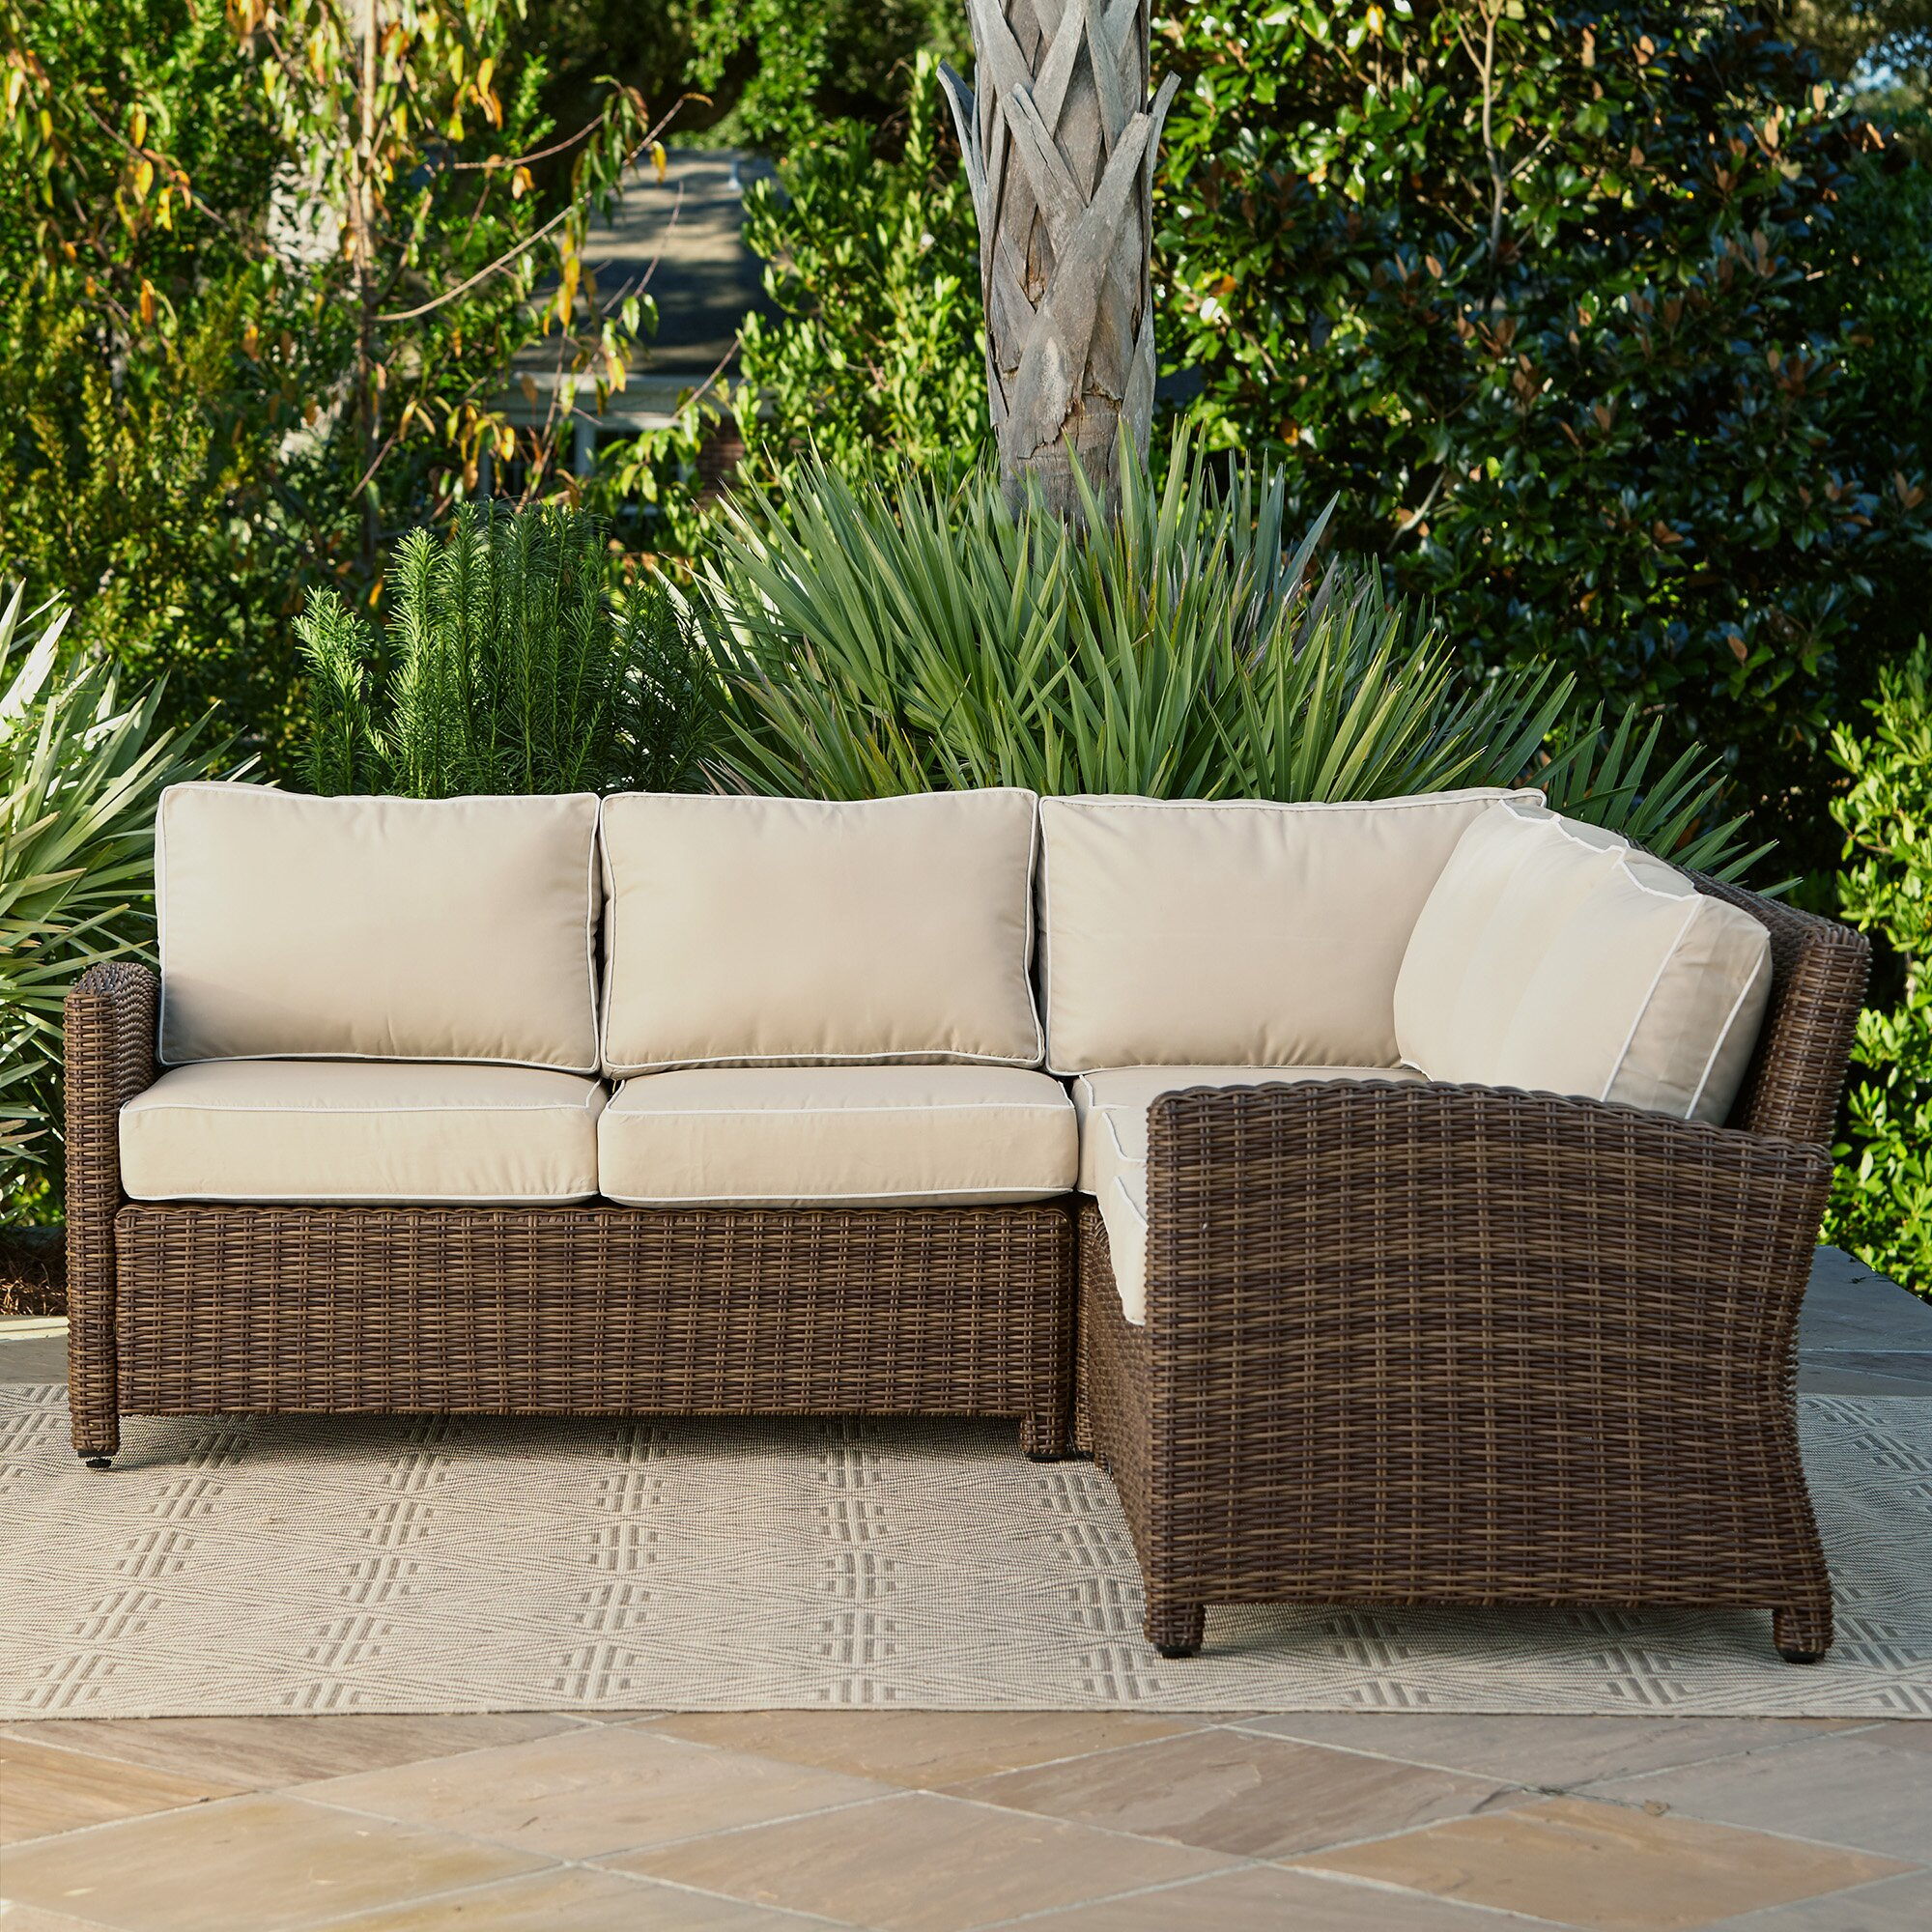 Outdoor Sectional Sofa Images: Birch Lane Lawson Wicker Sectional With Cushions & Reviews